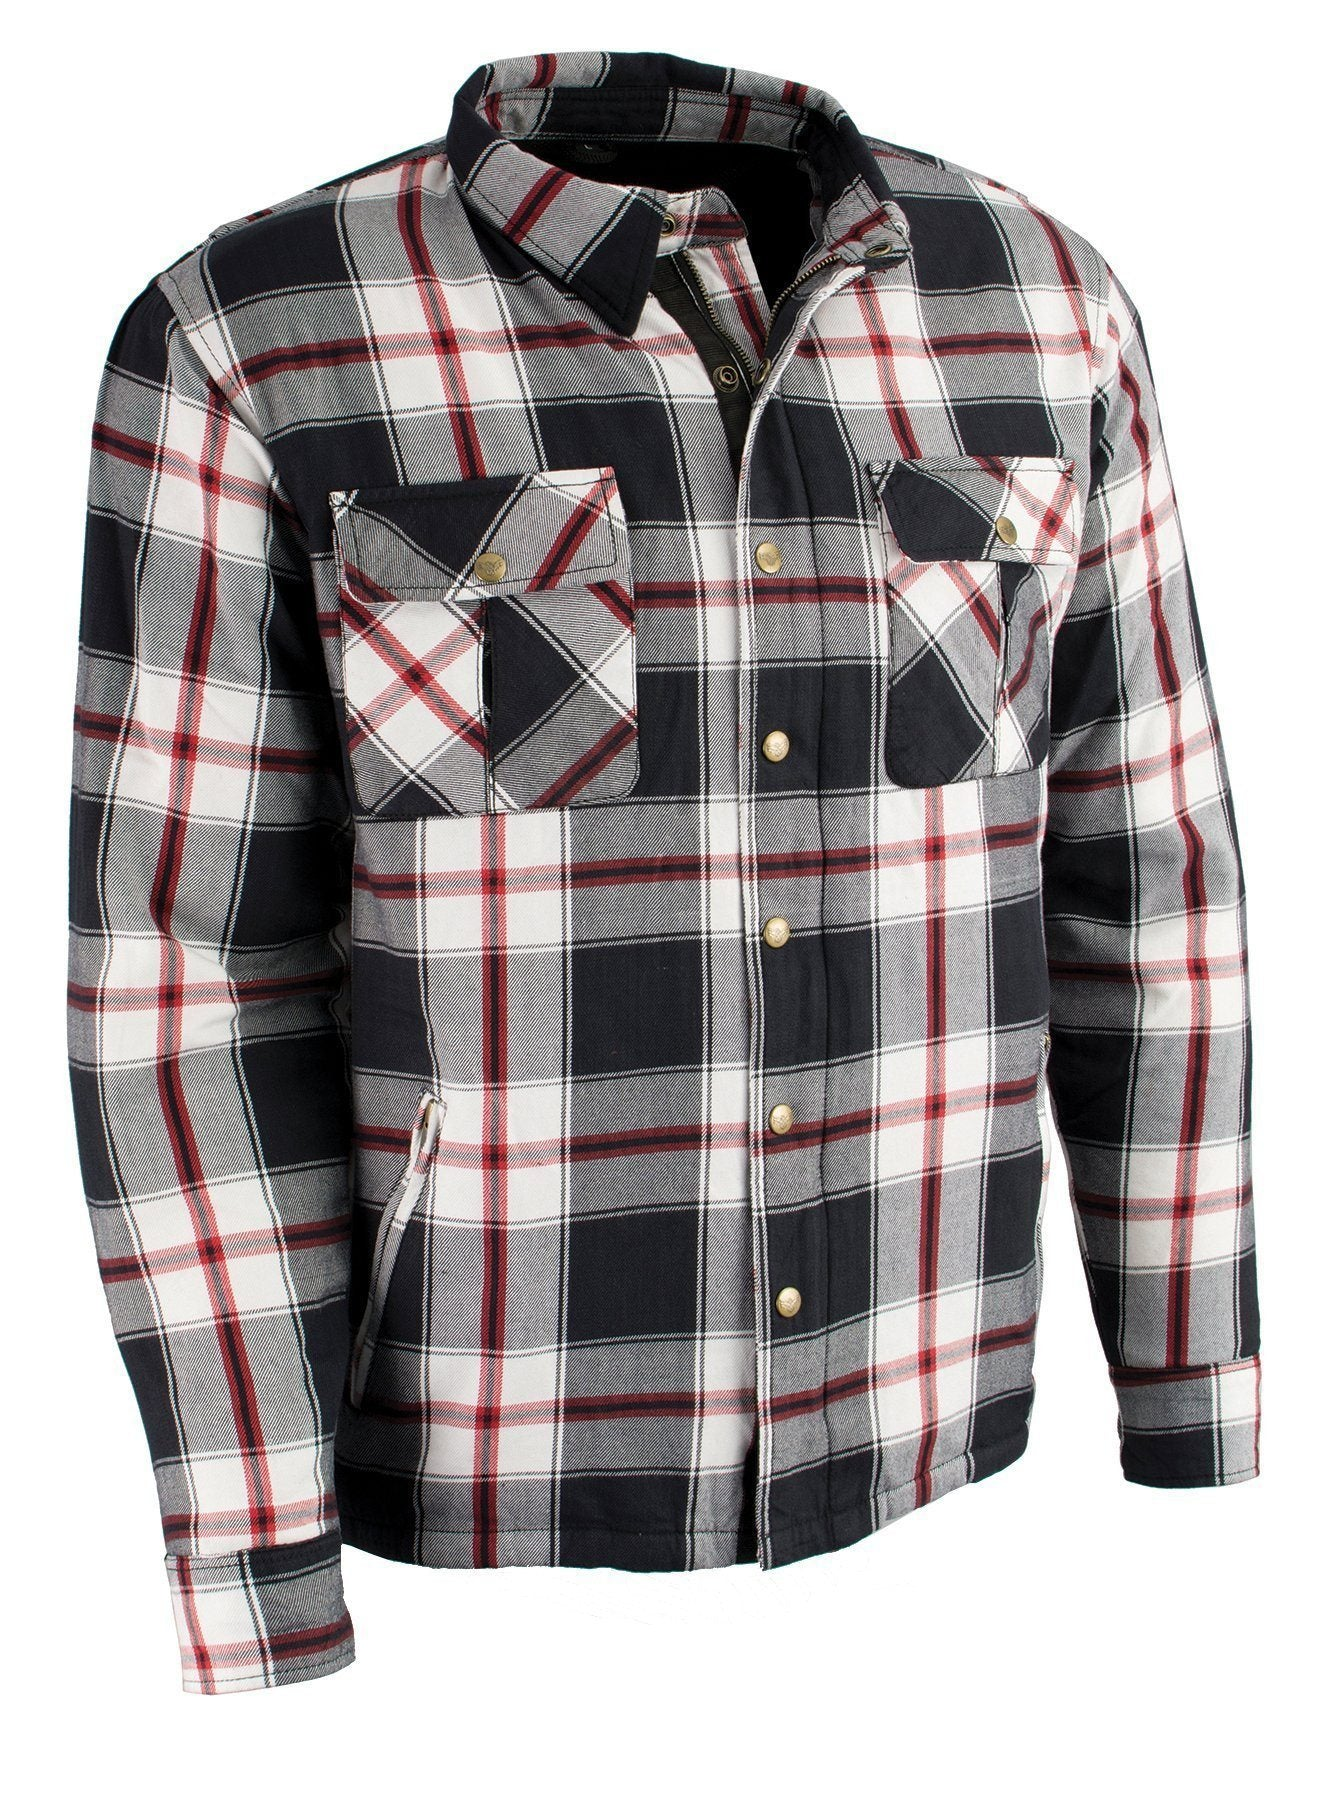 Milwaukee Performance-MPM1635-Men's Armored Flannel Biker Shirt w/ Aramid® by DuPont™ Fibers